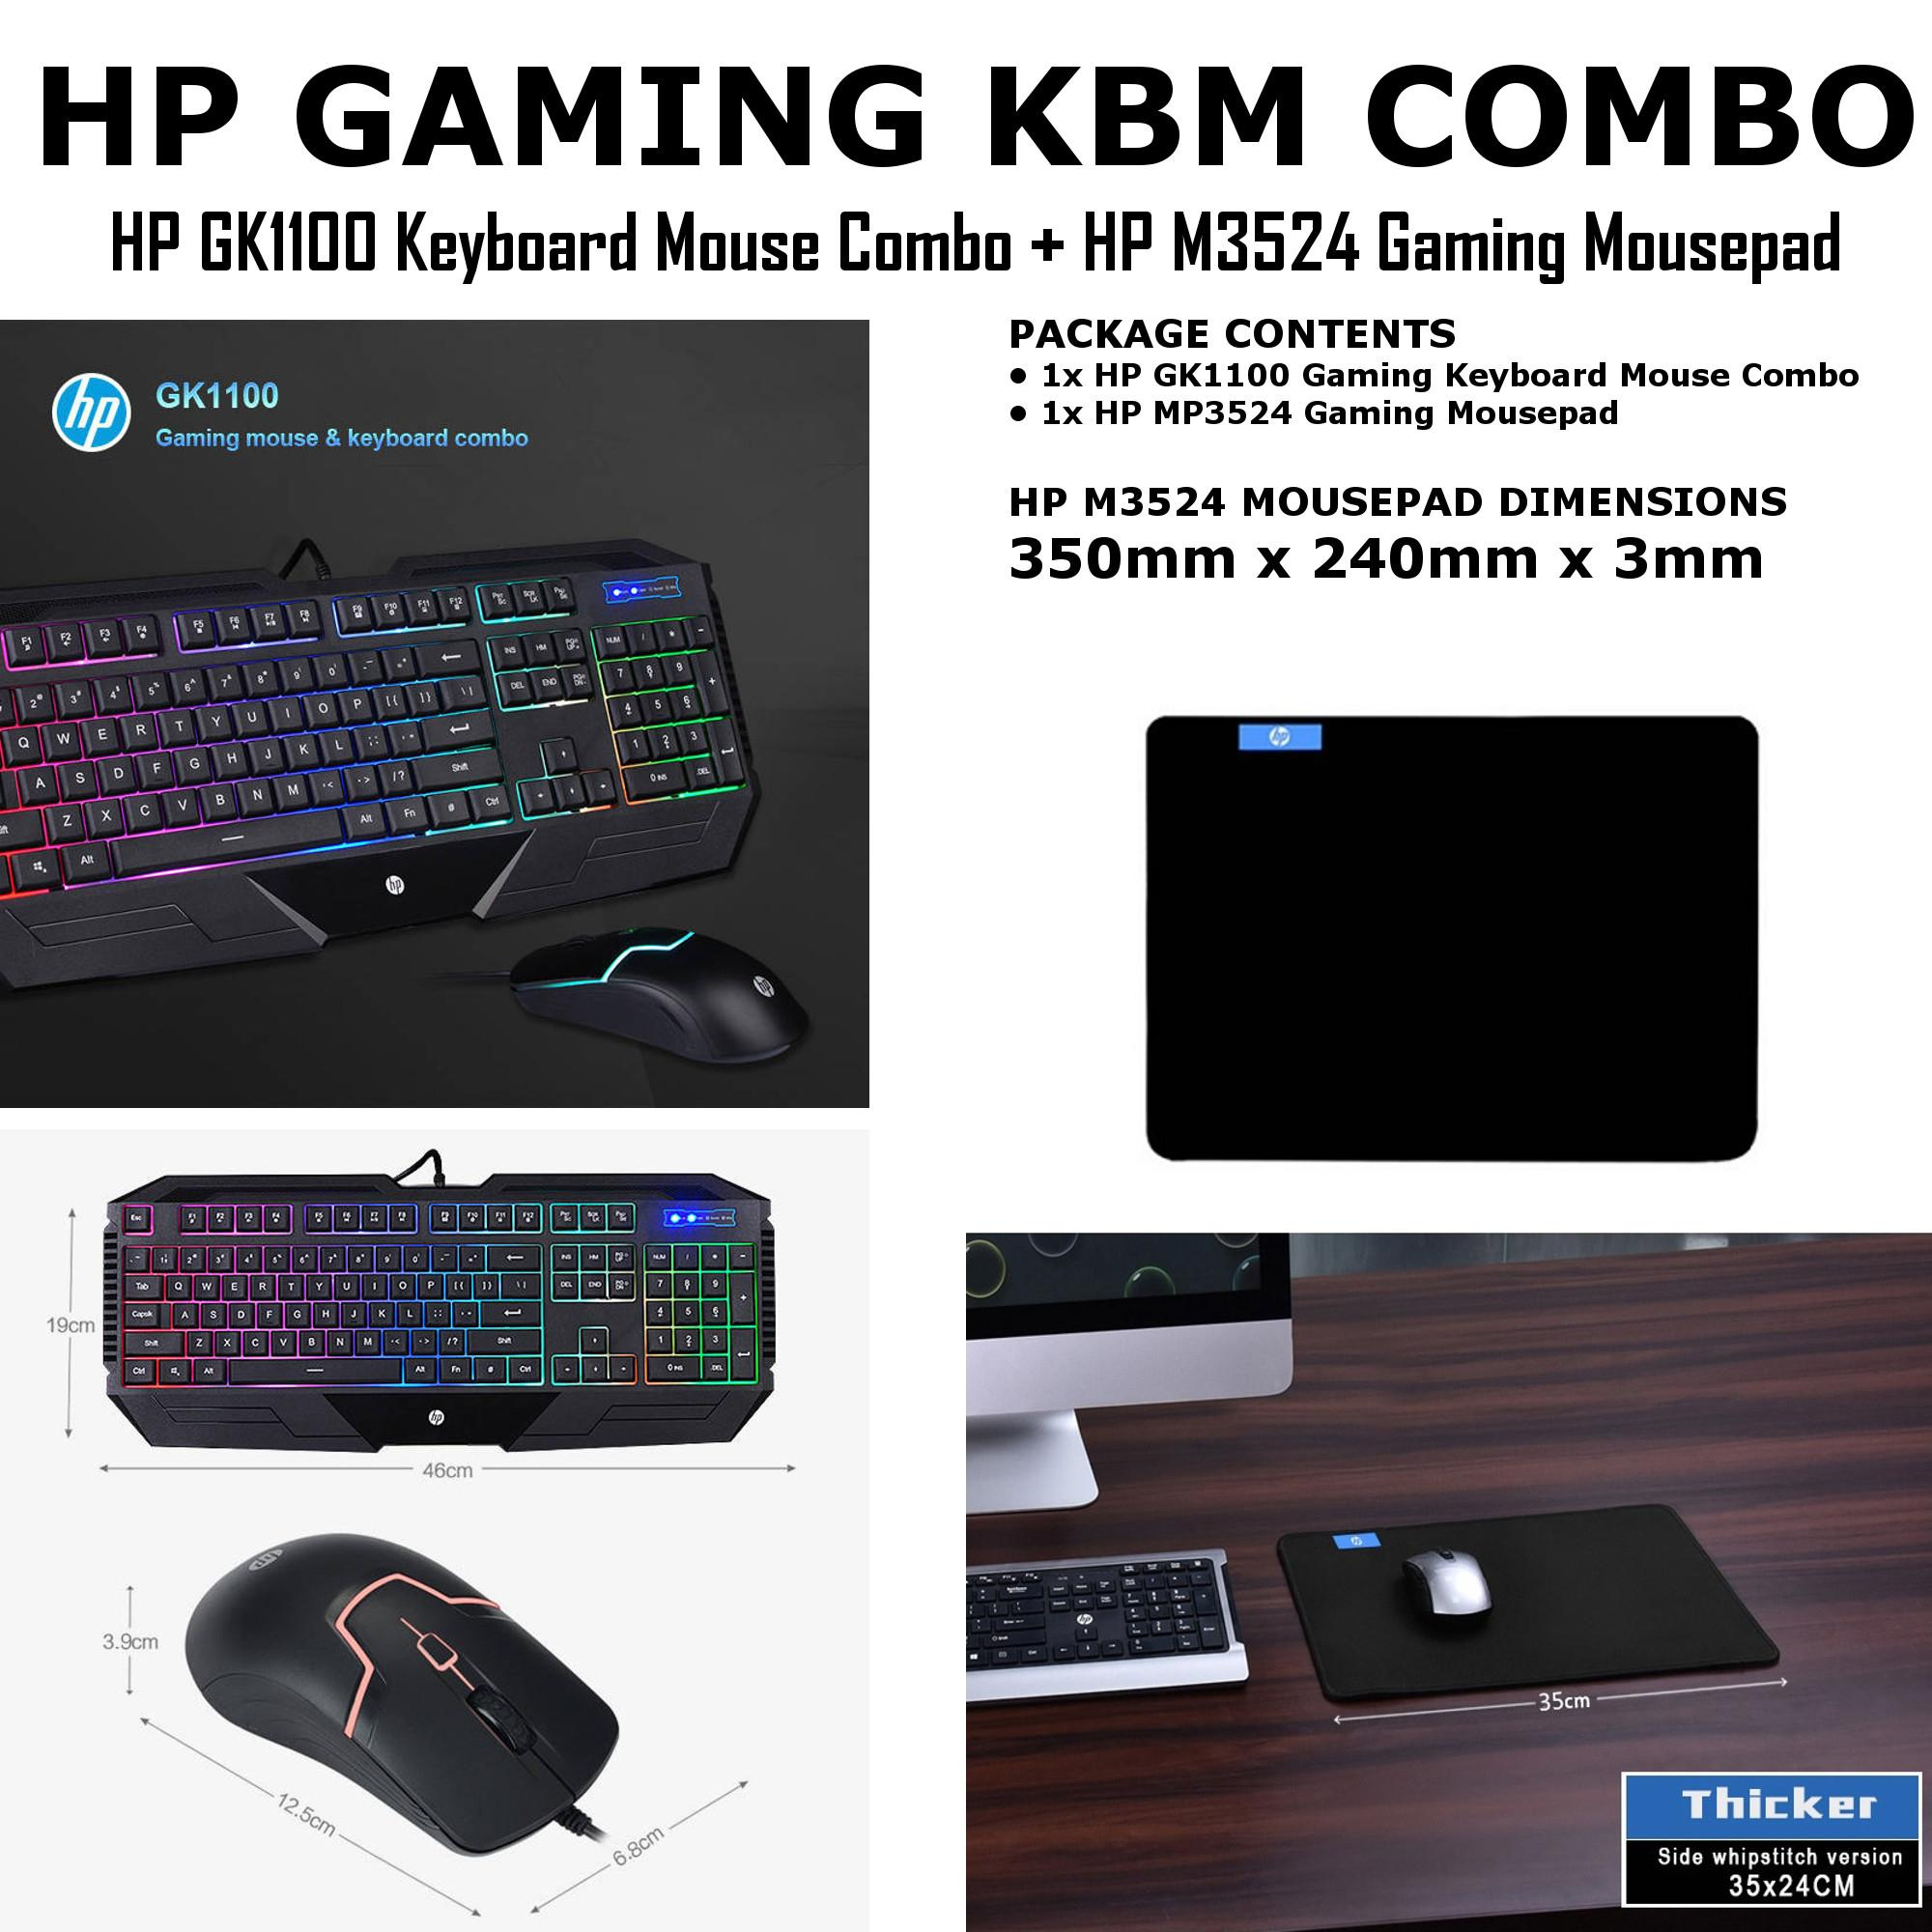 Mice Keyboard Combos Buy At Best Price In Logitech Mk220 Mouse Wireless Combo Original Singapore